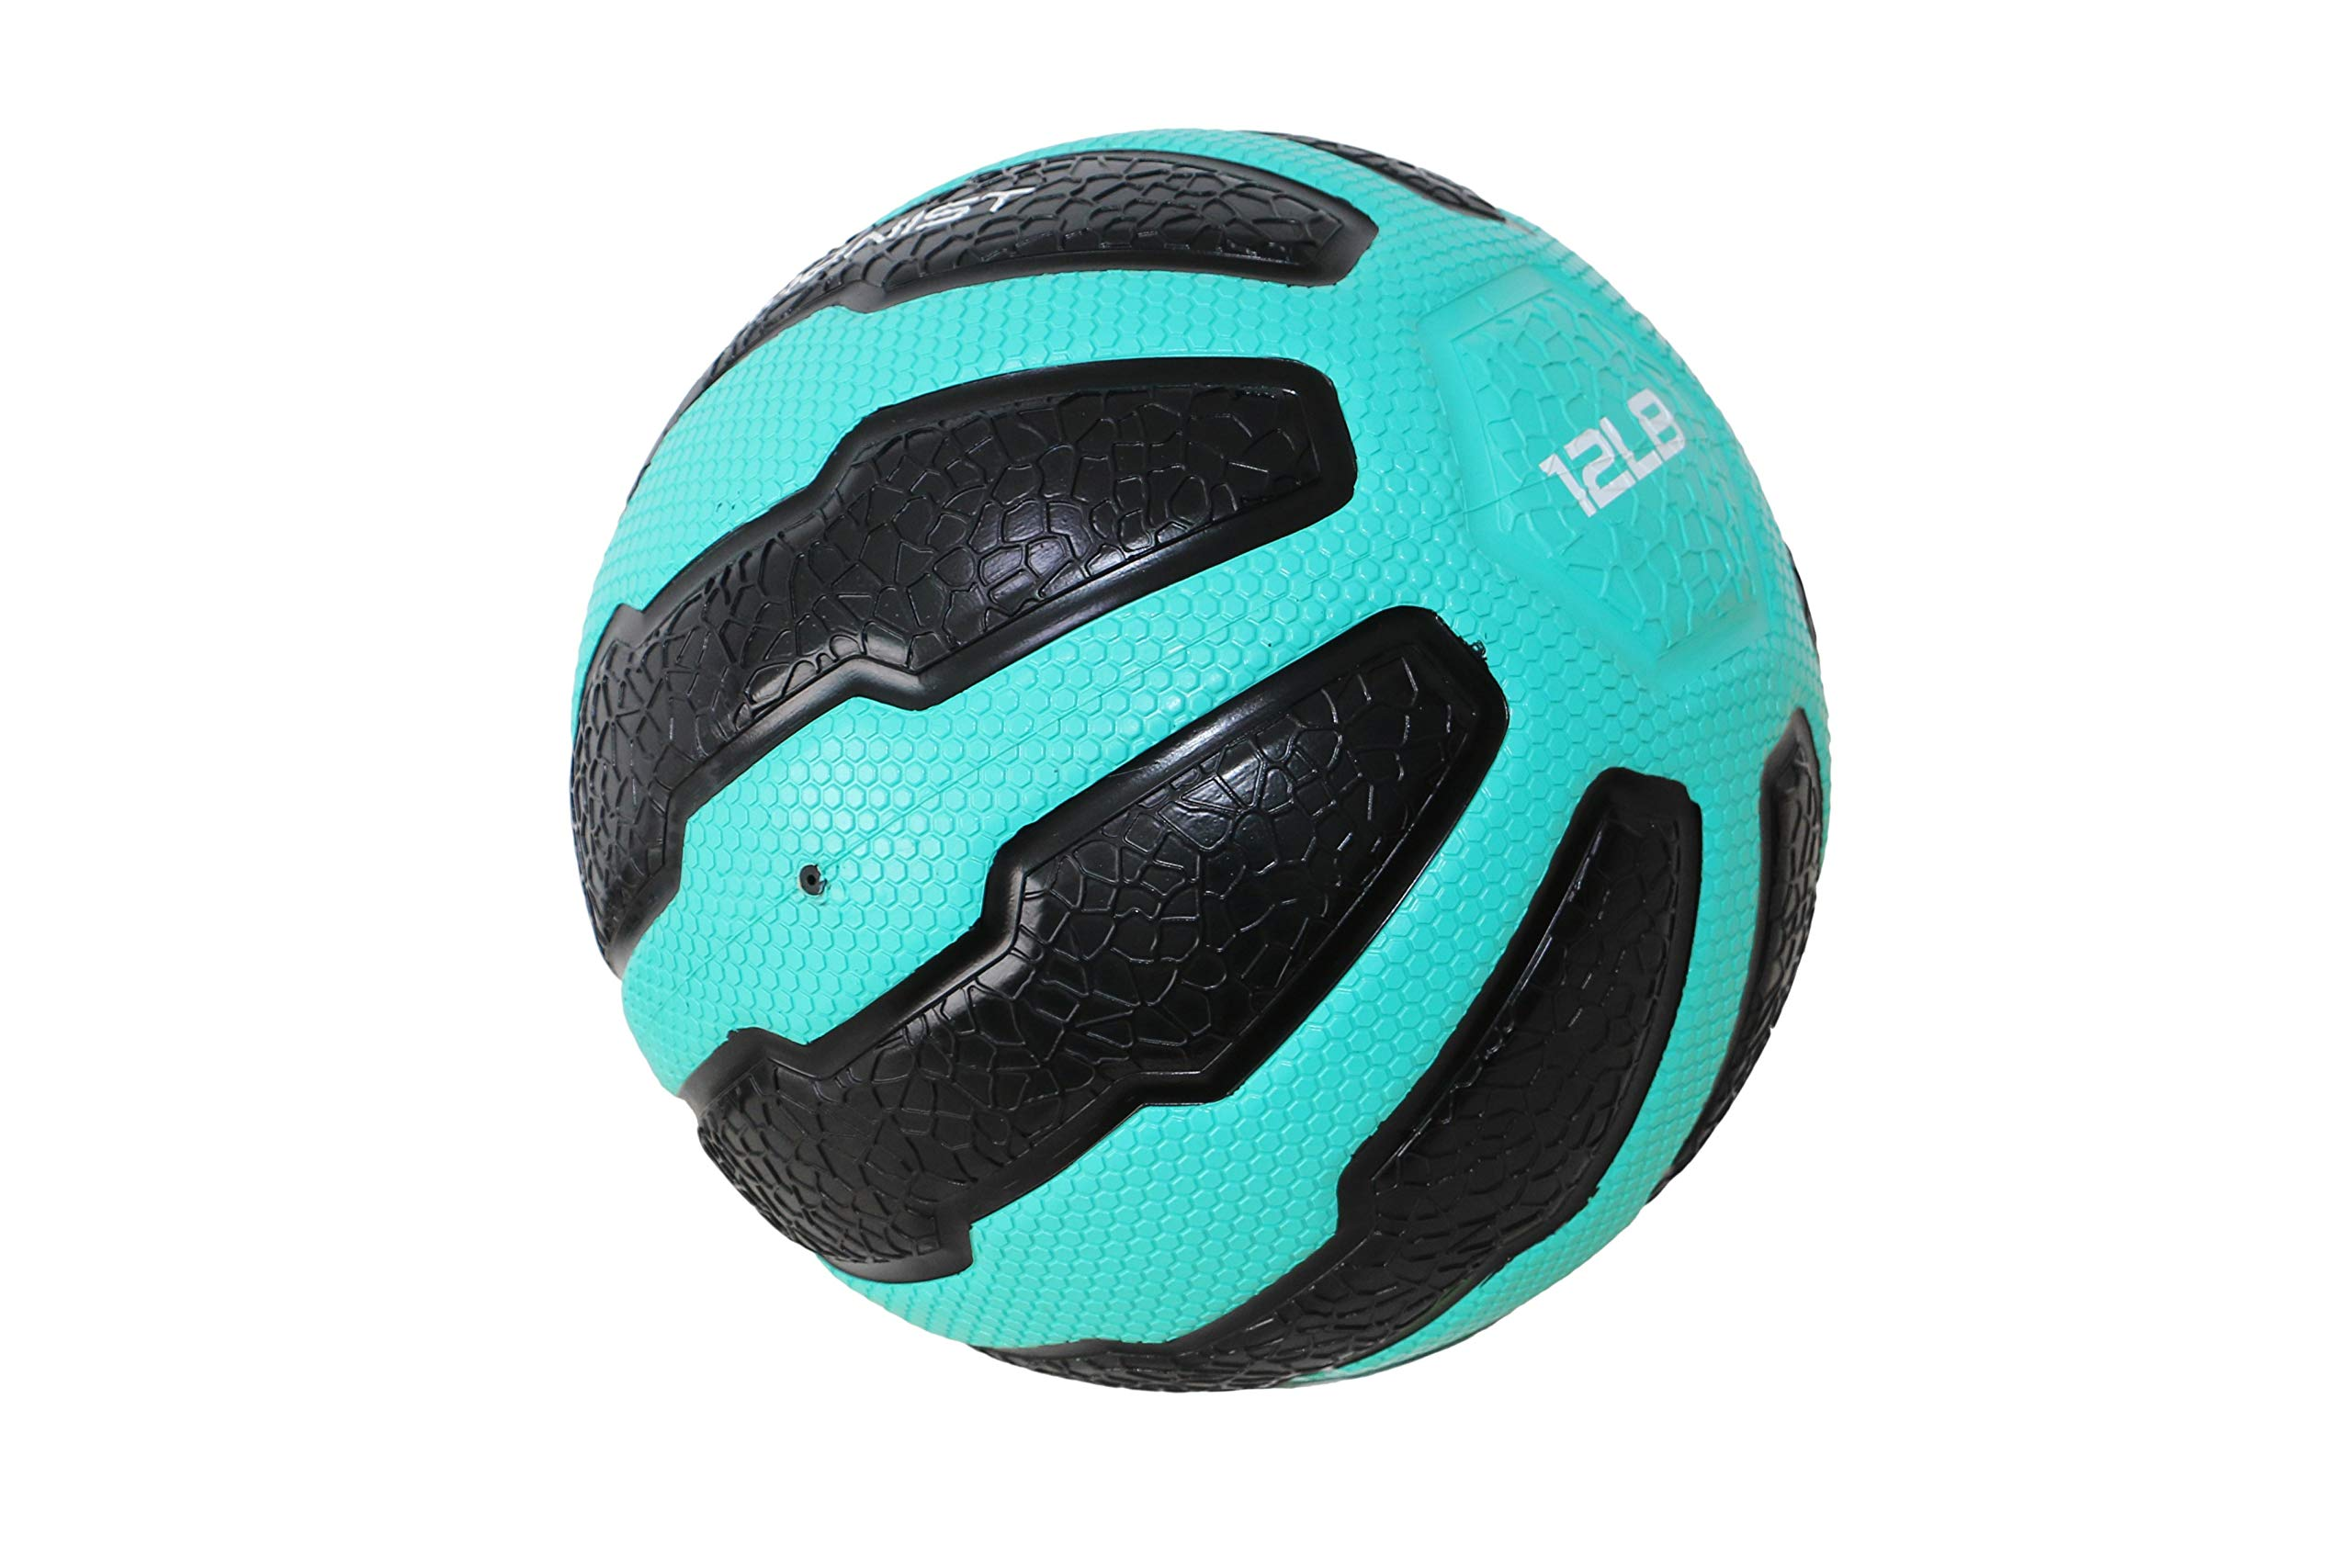 GYMENIST Rubber Medicine Ball with Textured Grip, Available in 9 Sizes, 2-20 LB, Weighted Fitness Balls,Improves Balance and Flexibility - Great for Gym, Workouts, (12 lb (Teal-Black))